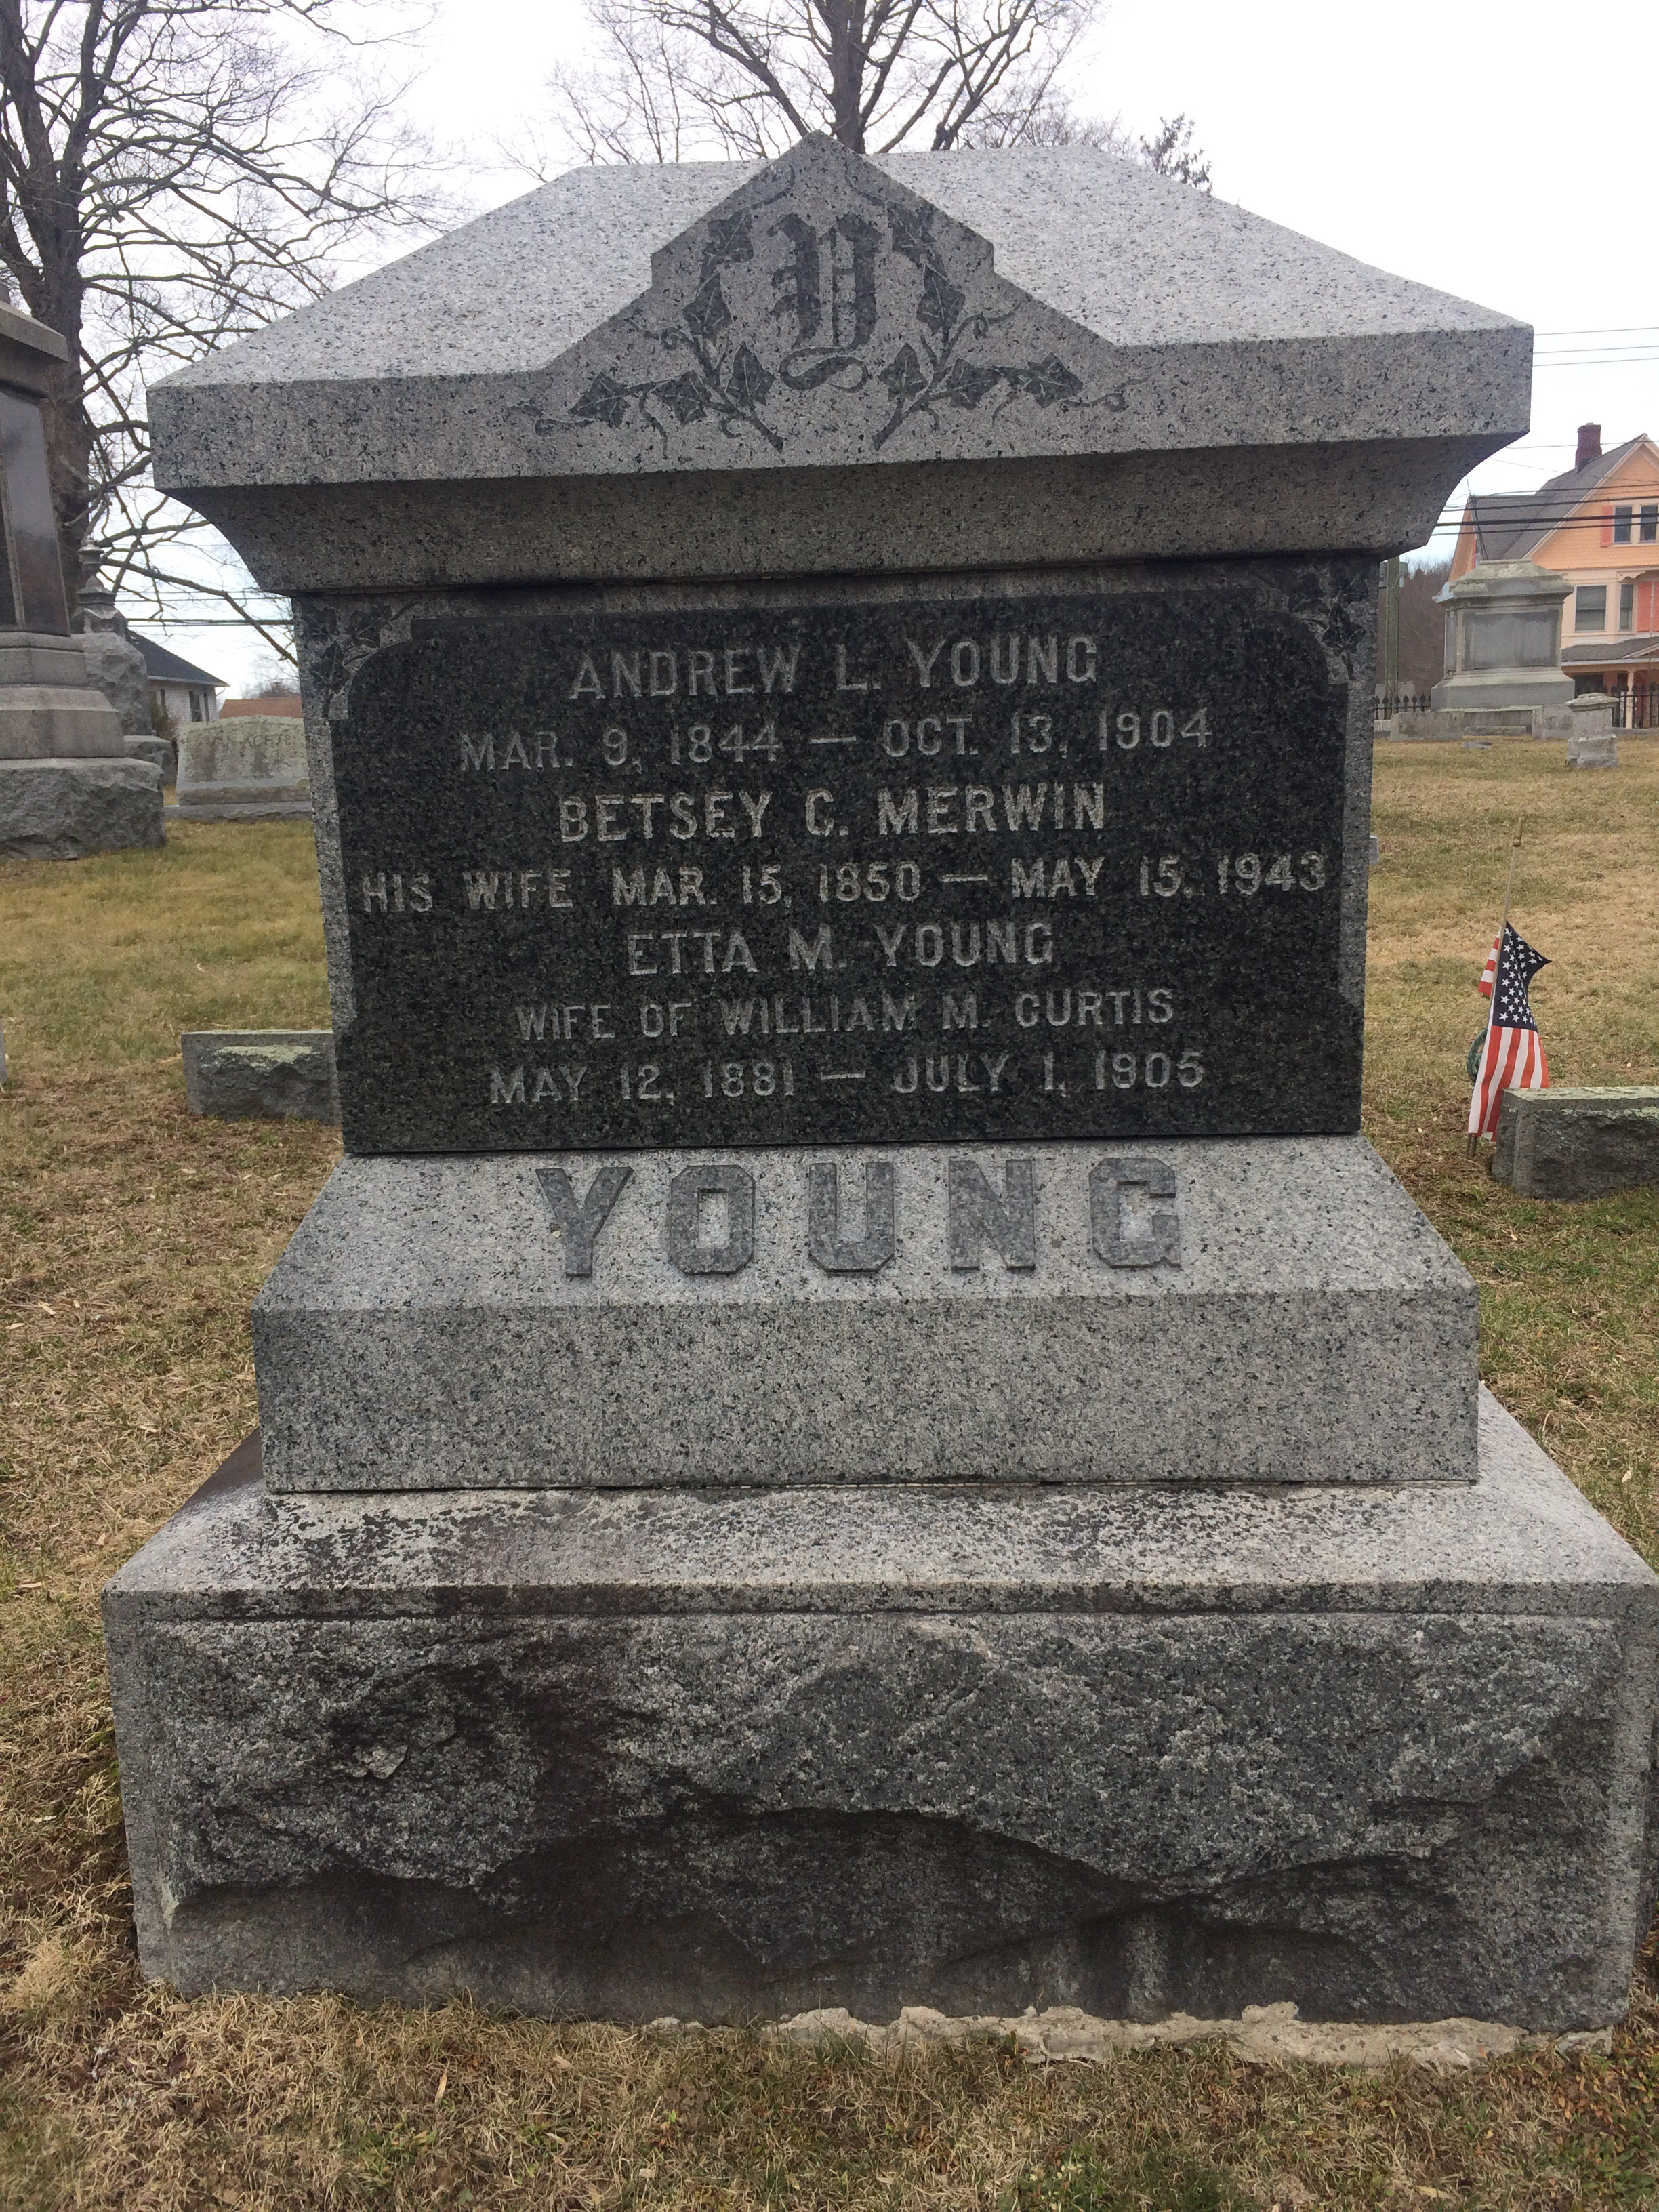 Andrew L Young